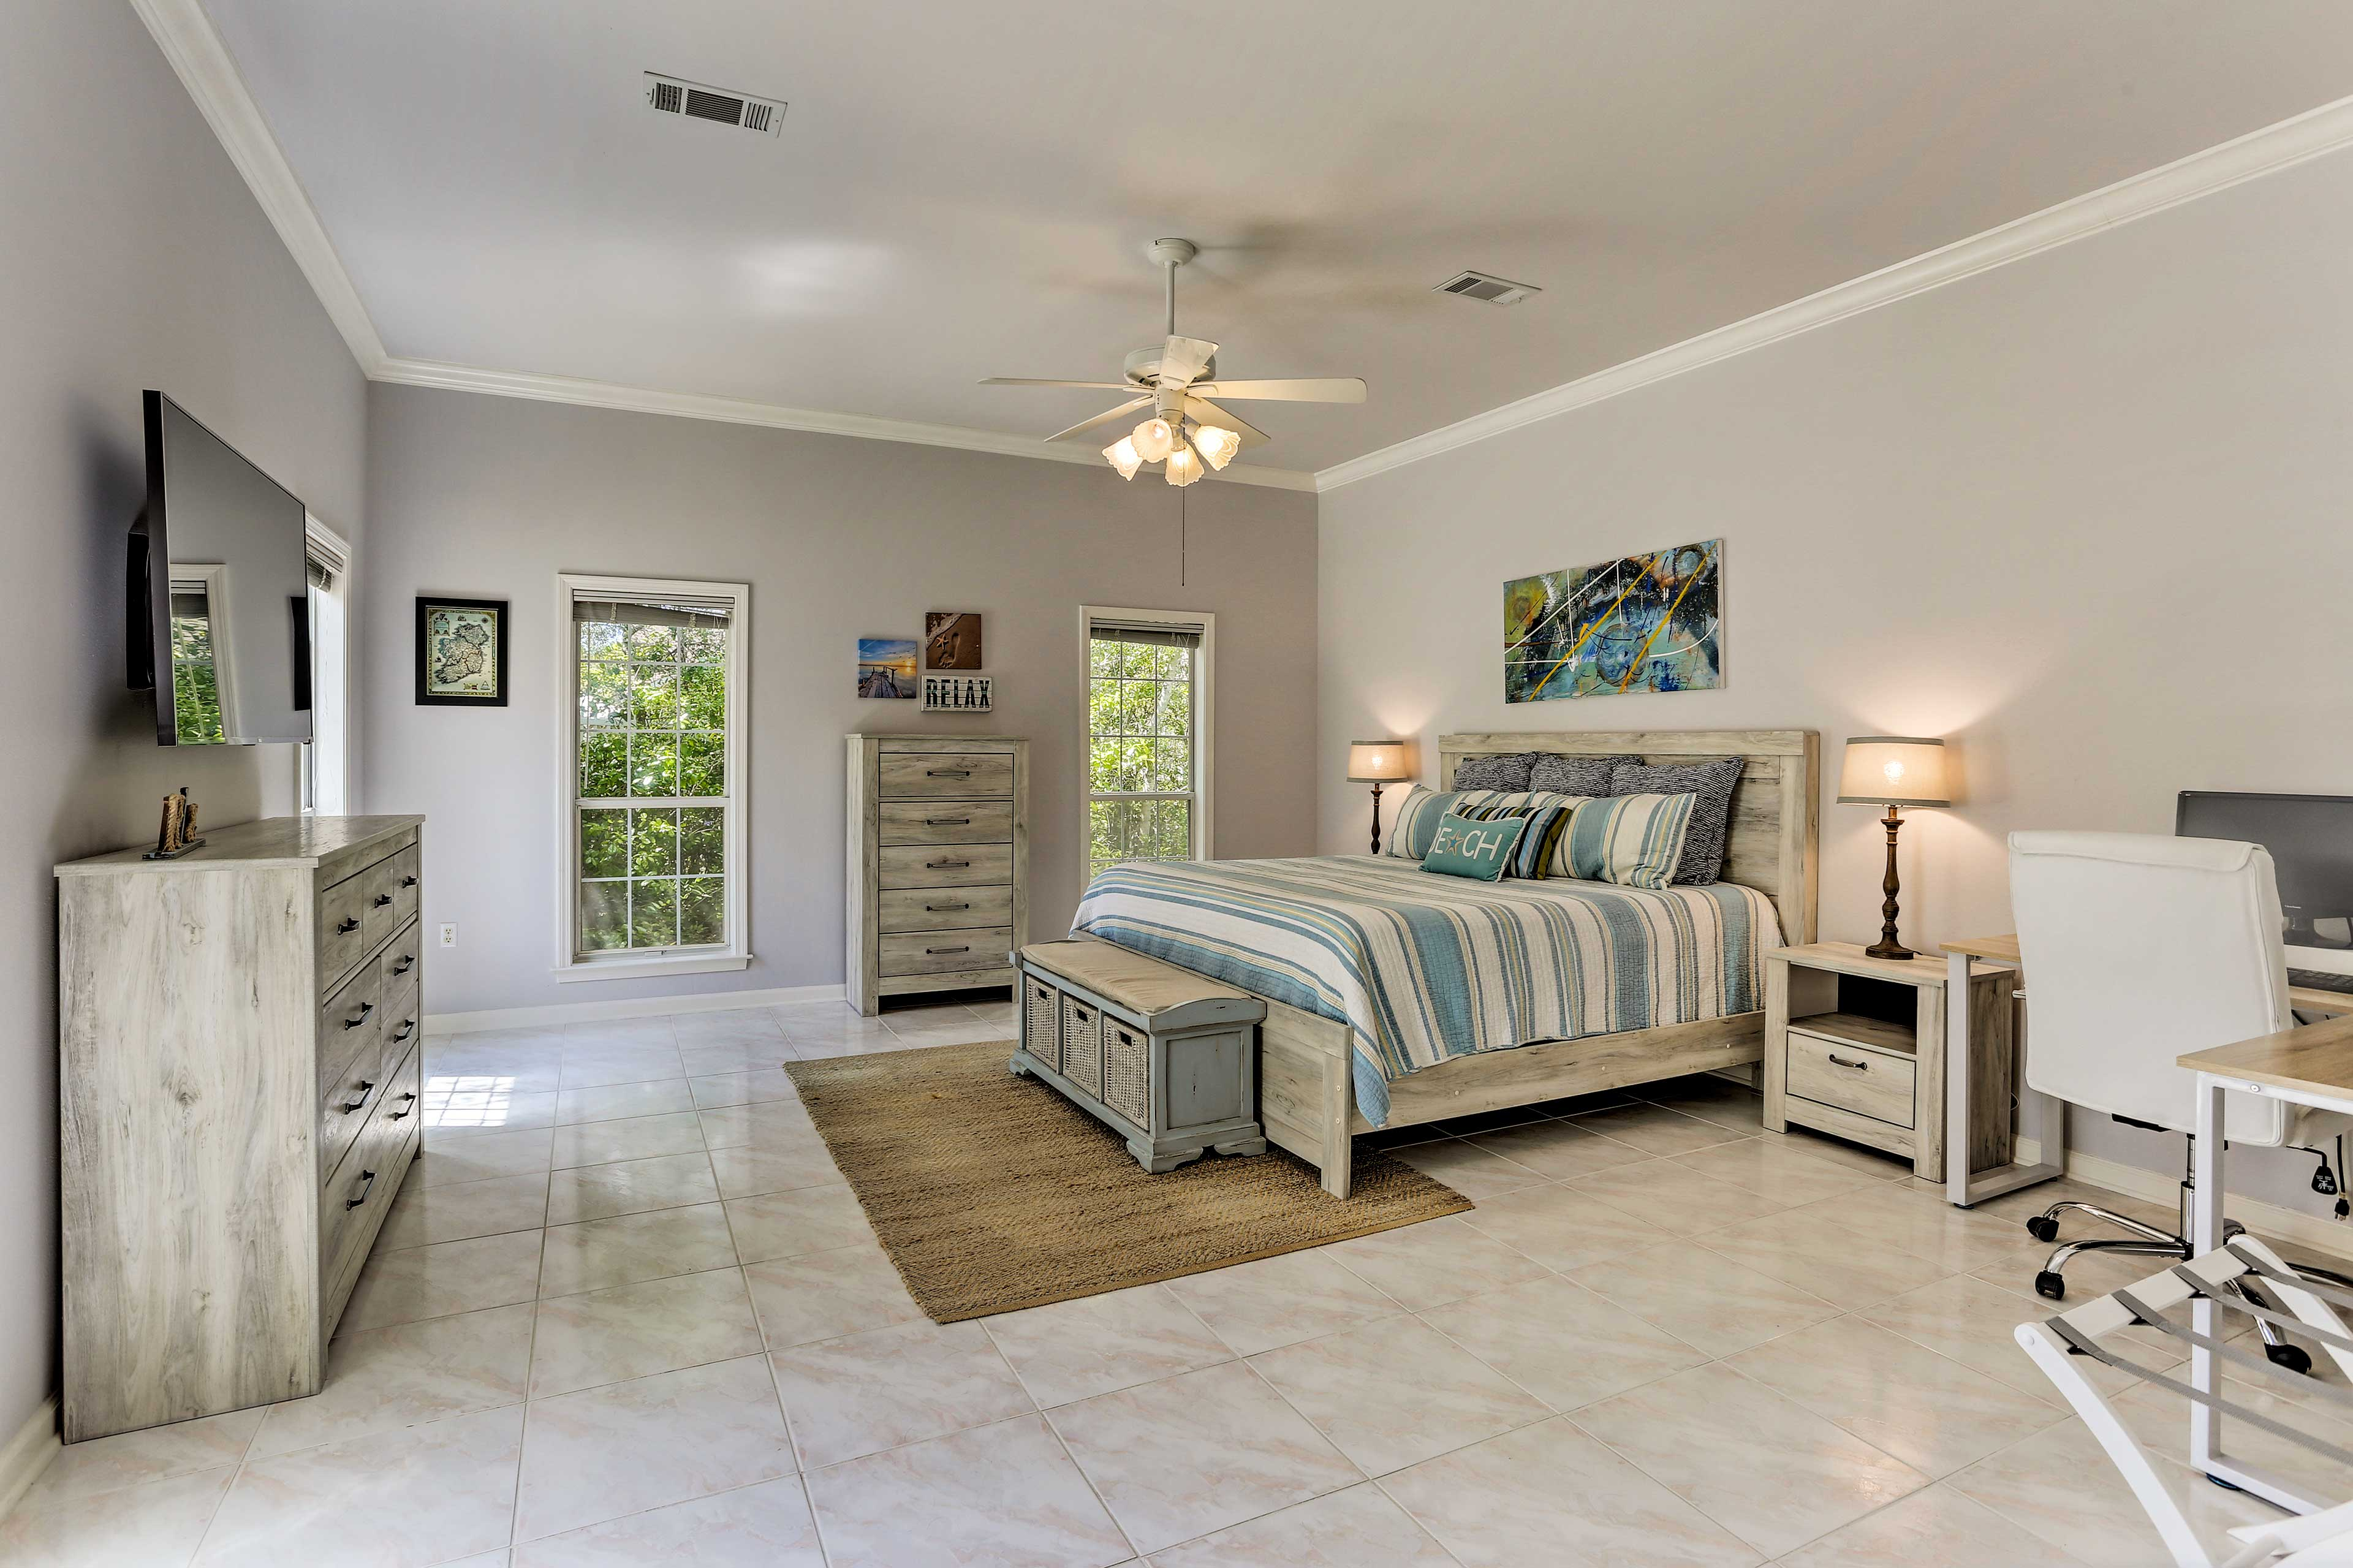 Two lucky guests can claim the expansive master bedroom.